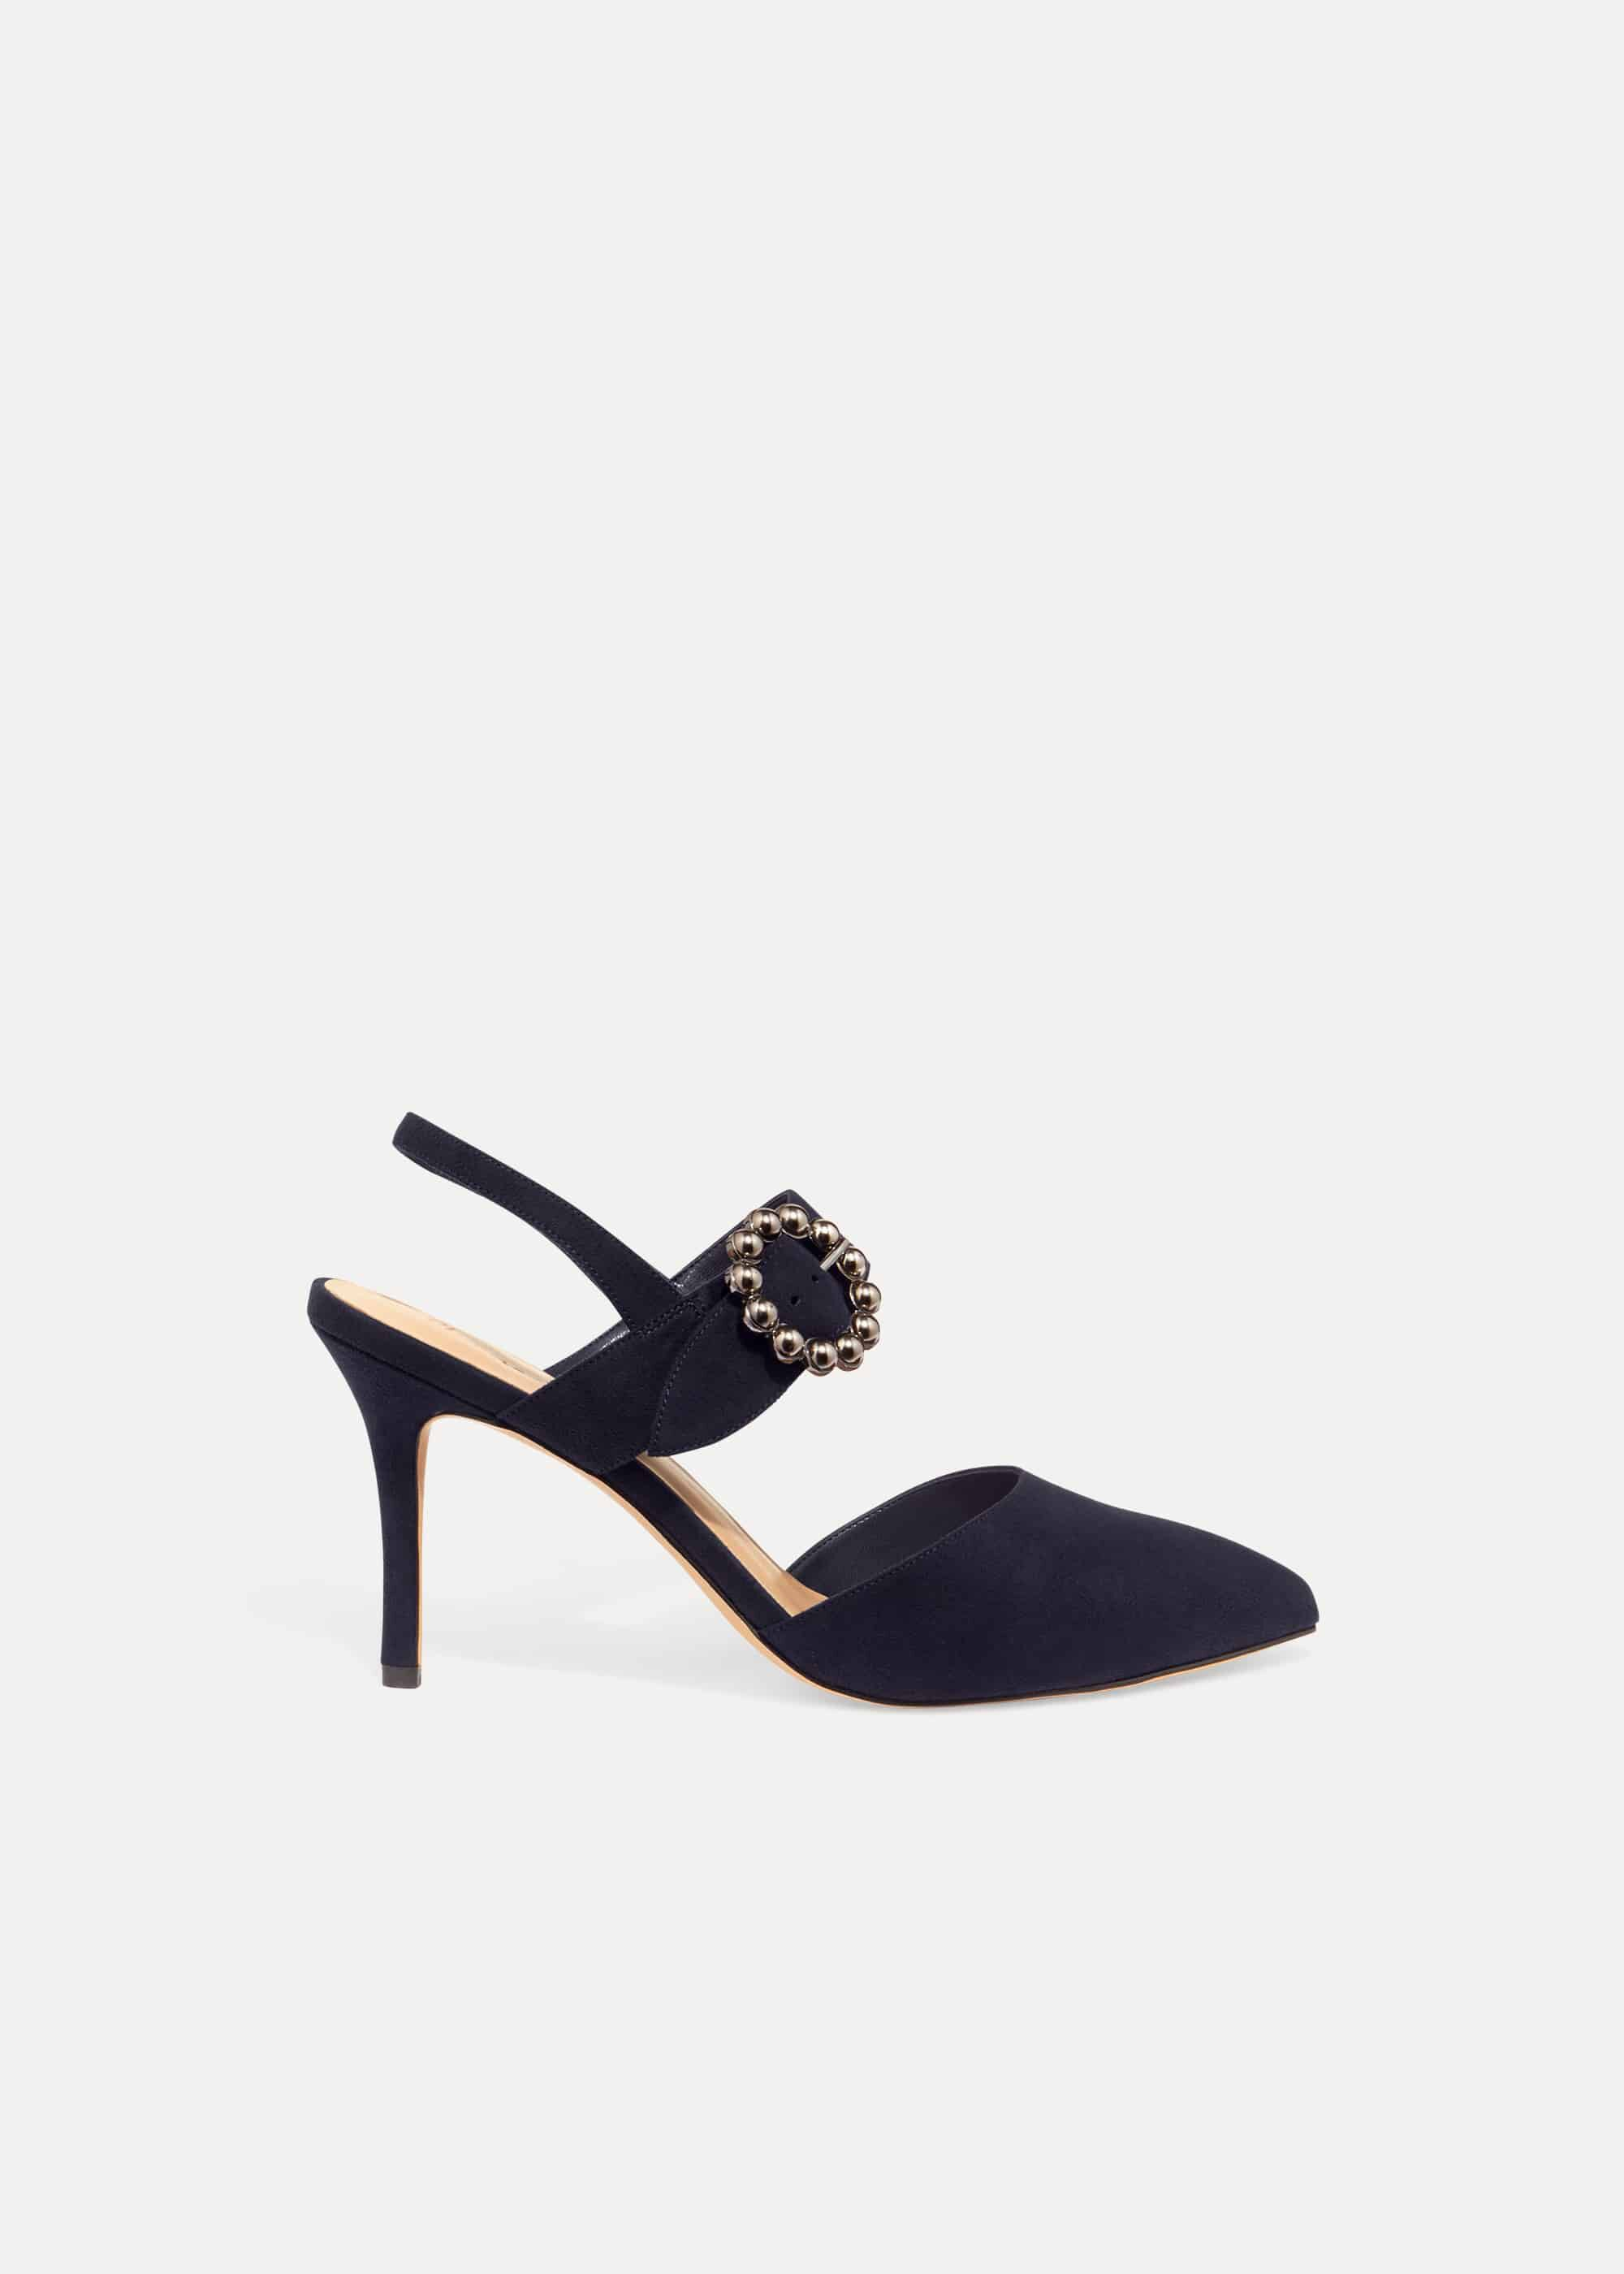 Women's Shoes Sale | Phase Eight